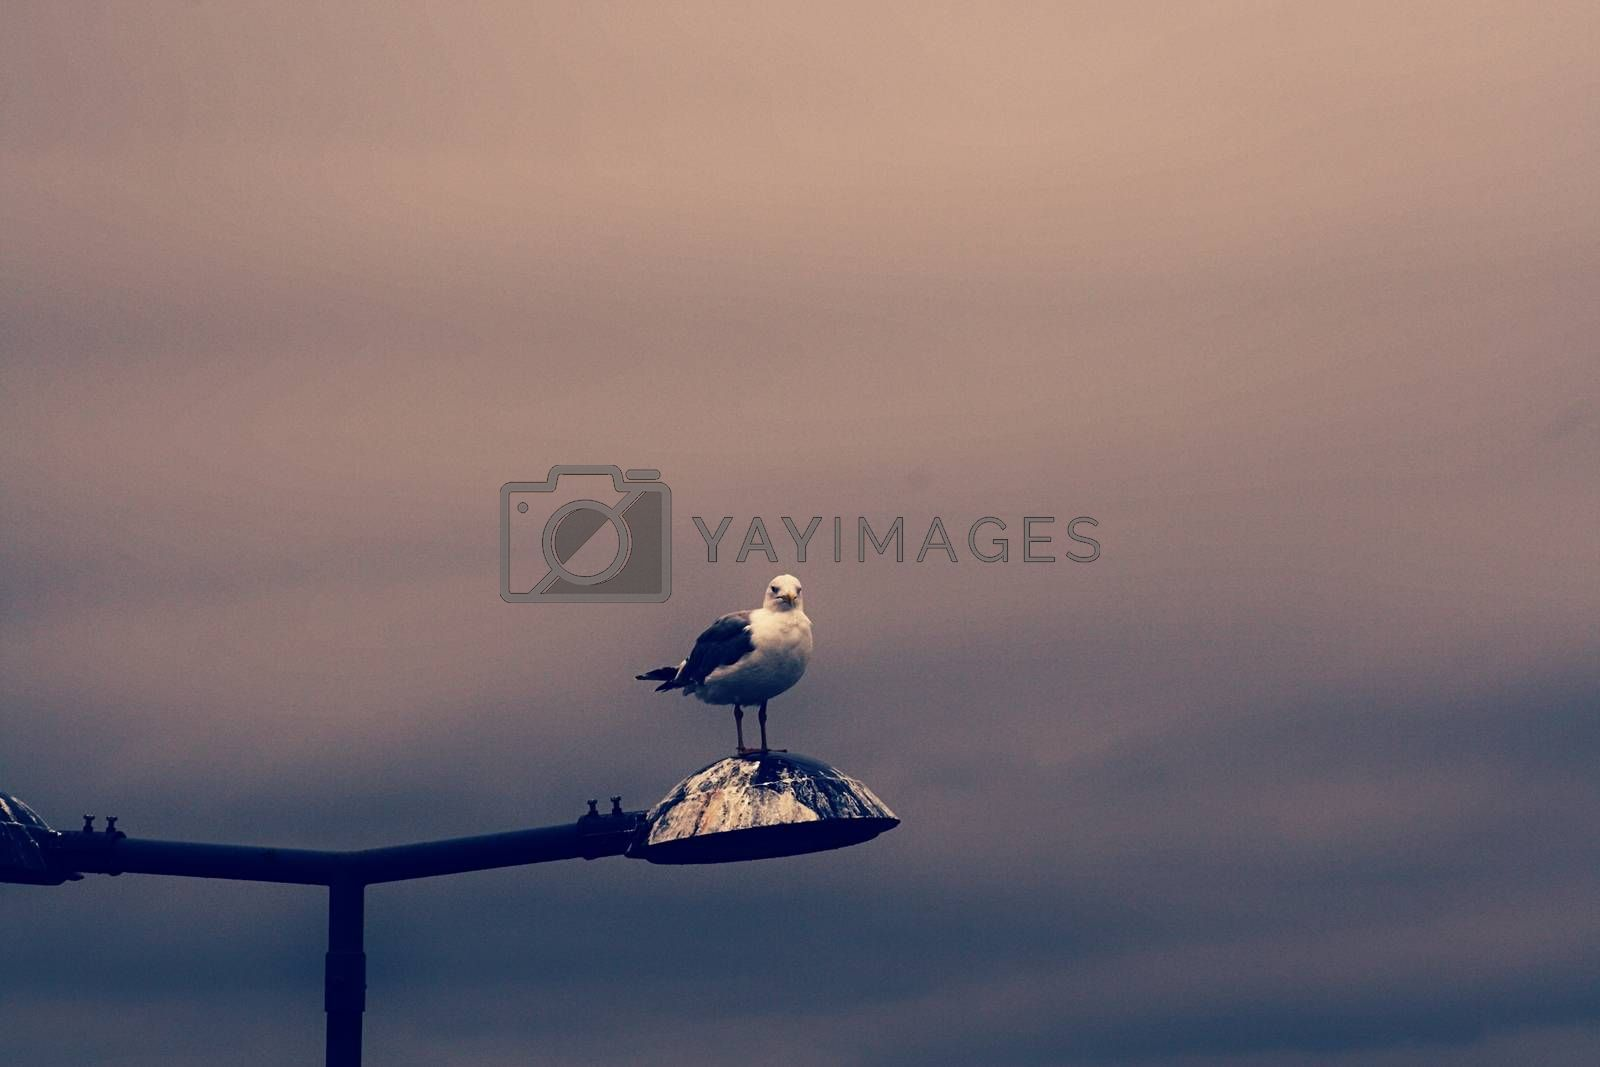 Royalty free image of Photo of the bird on the lamp by balage941